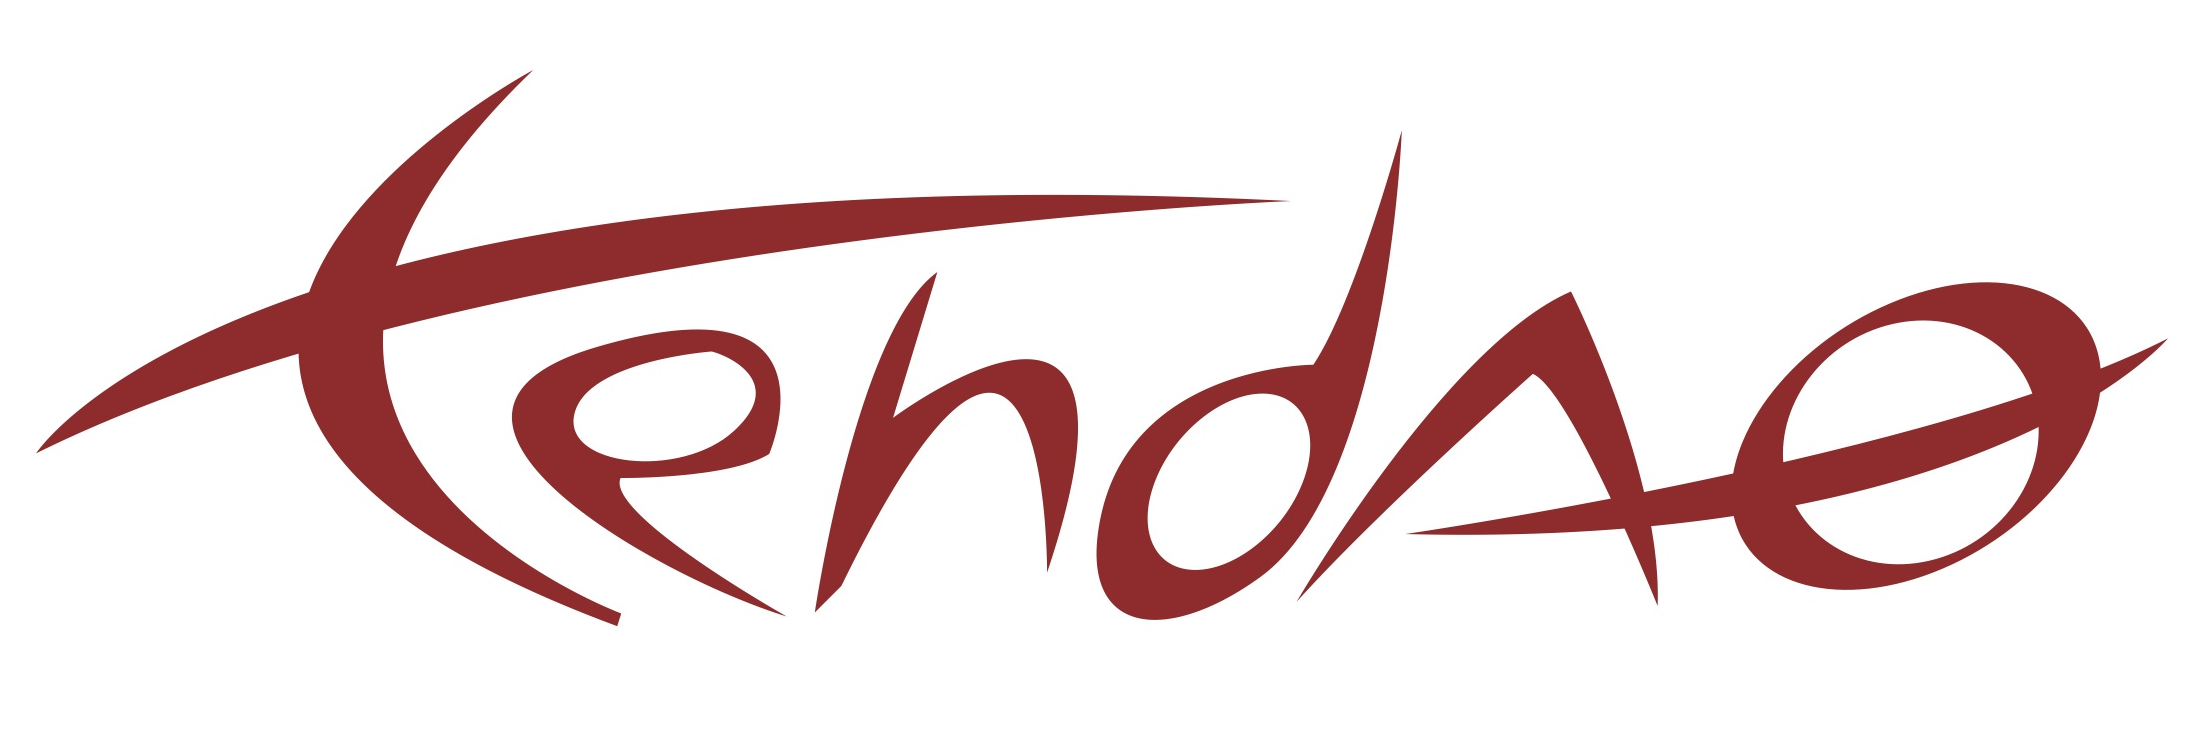 logo tendao rouge.jpg